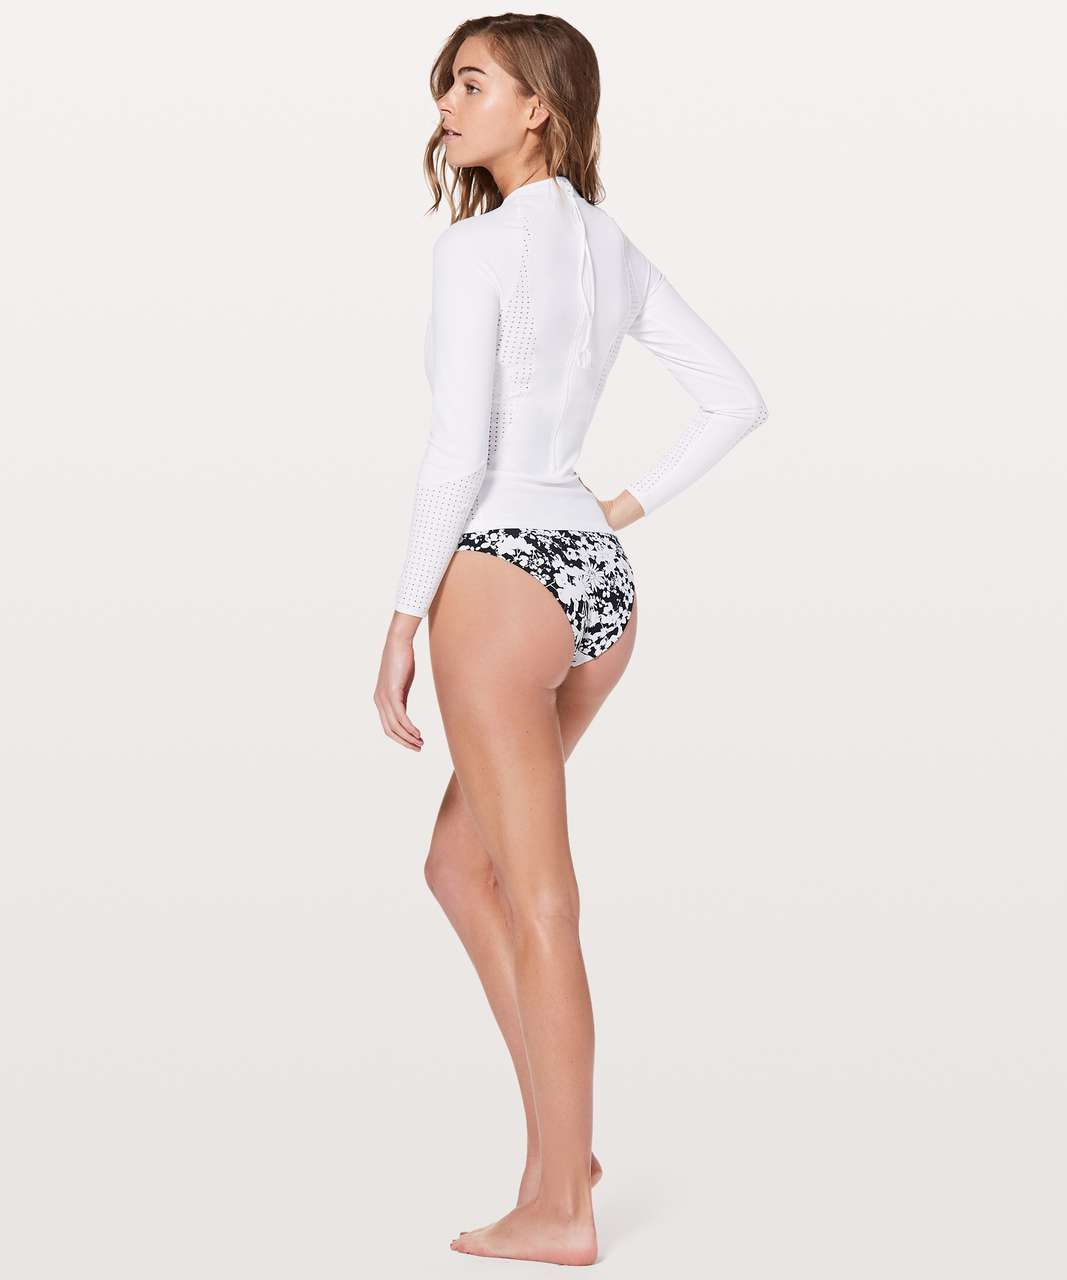 Lululemon Swell Seeker Paddle Top - White